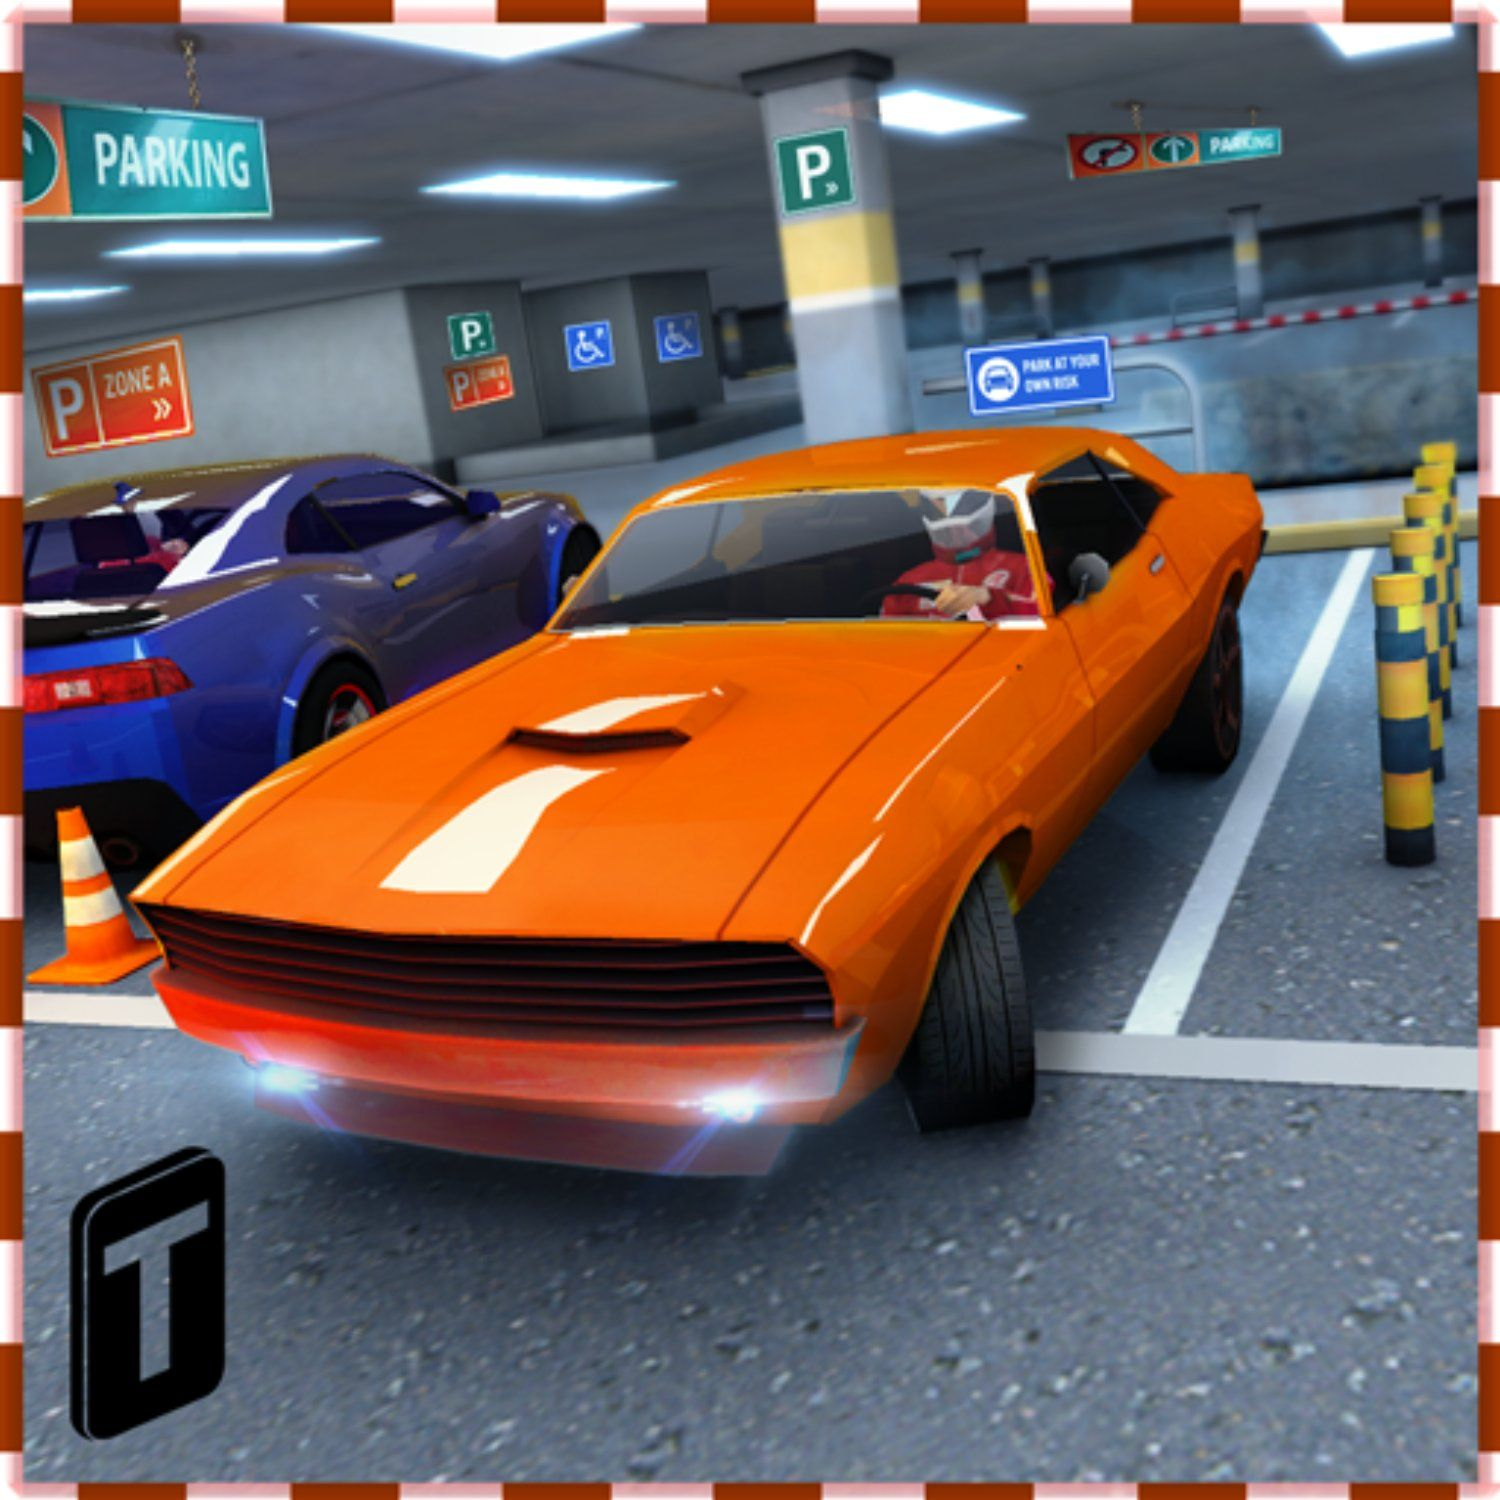 Multi Storey Car Parking 3d Read More At The Image Link This